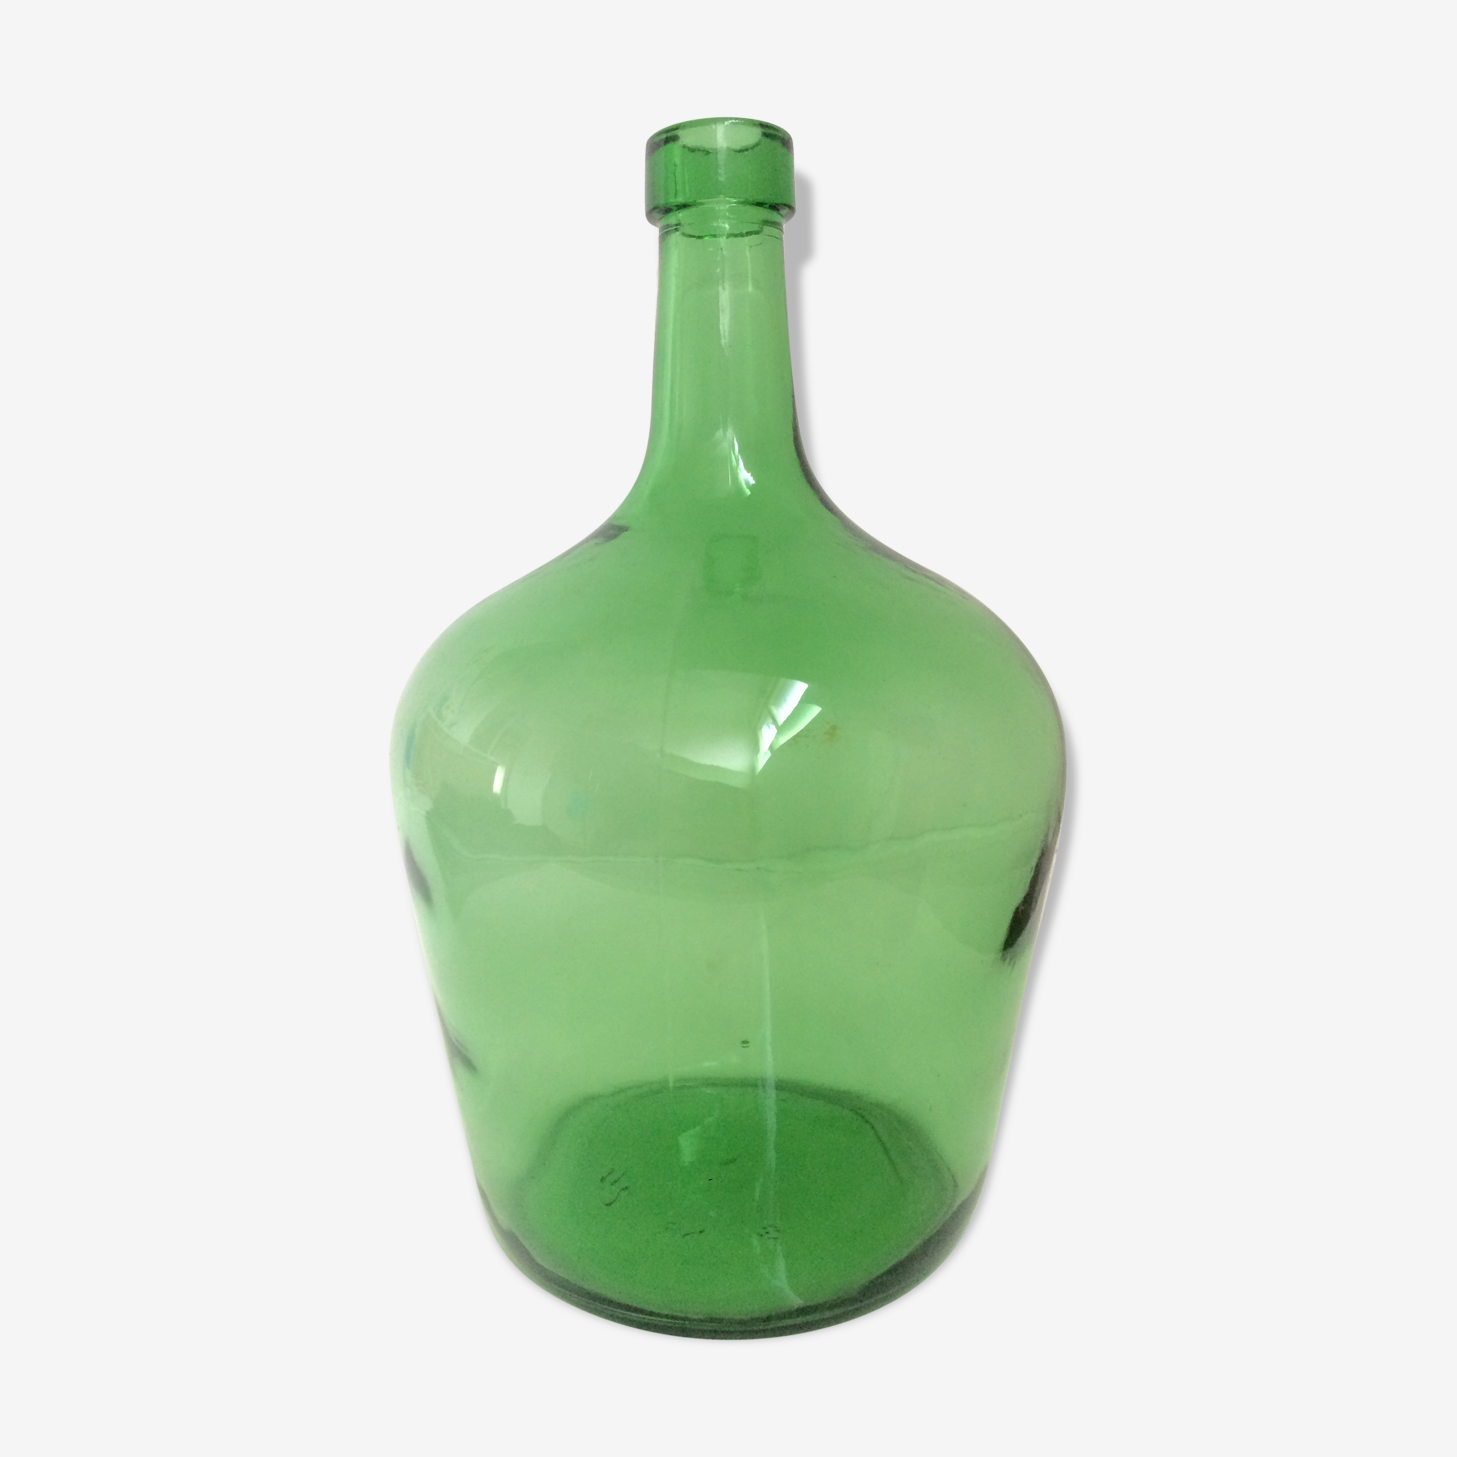 Dame jeanne 2,5 litres